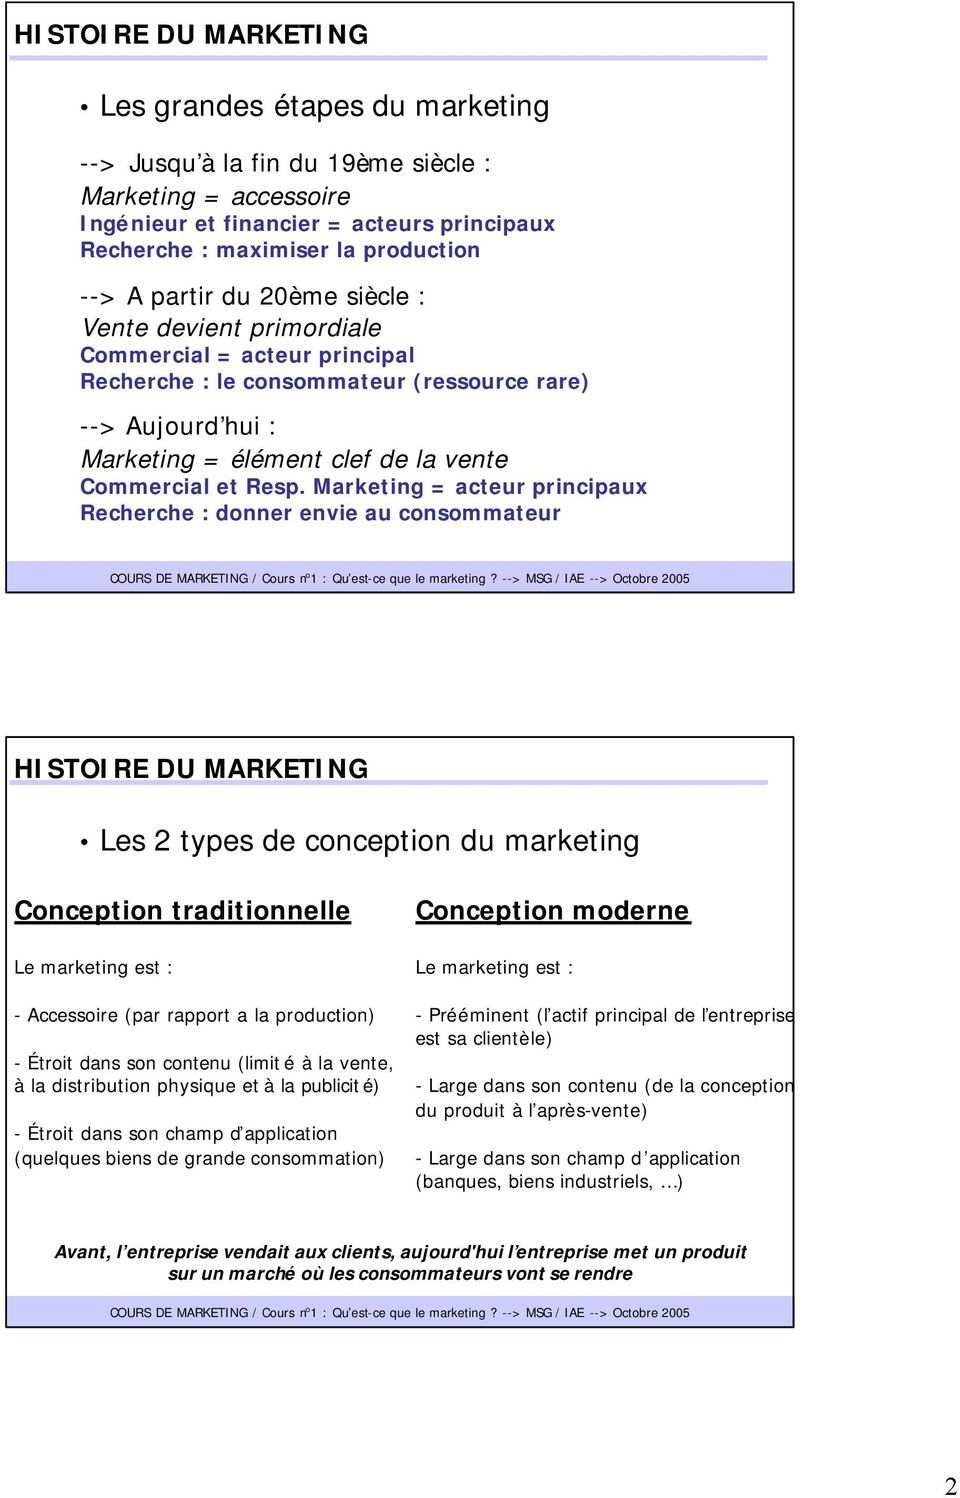 Marketing = acteur principaux Recherche : donner envie au consommateur HISTOIRE DU MARKETING Les 2 types de conception du marketing Conception traditionnelle Le marketing est : - Accessoire (par